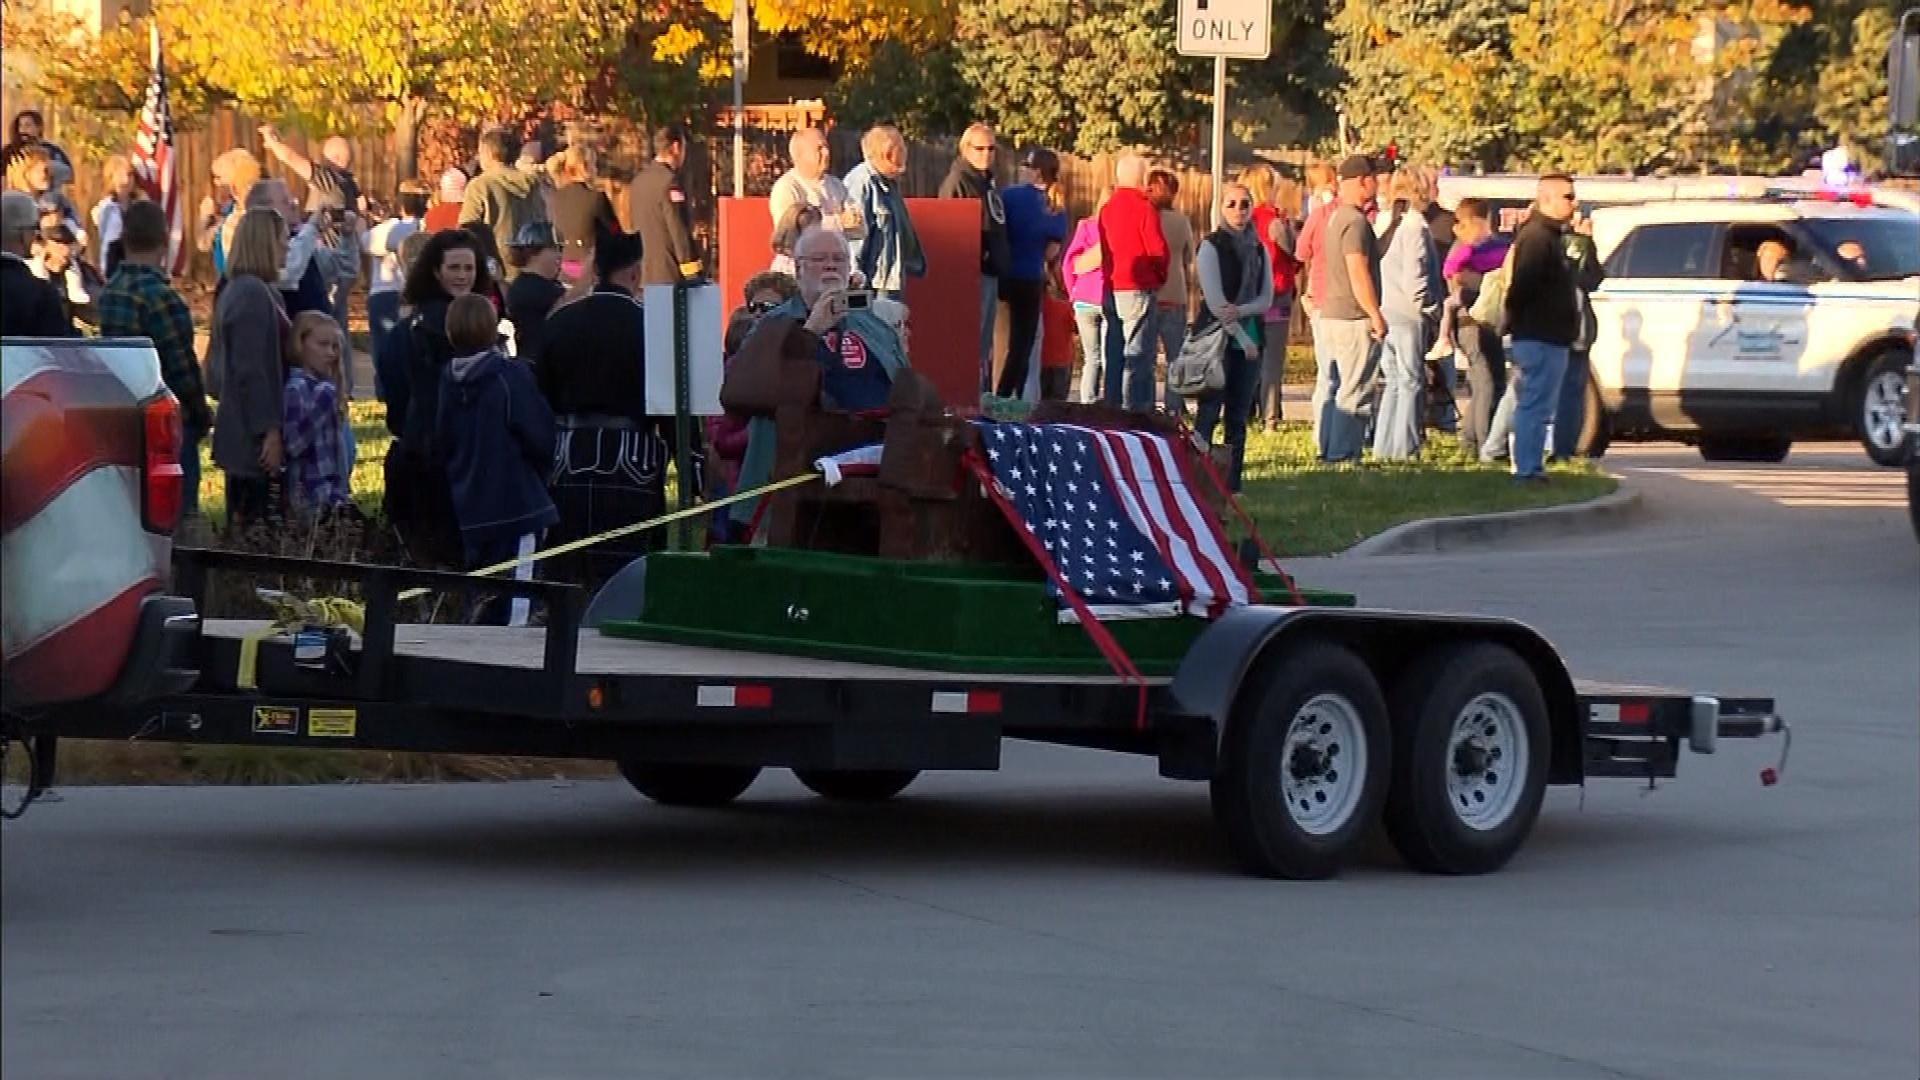 The WTC beam was honored during its journey (credit: CBS)